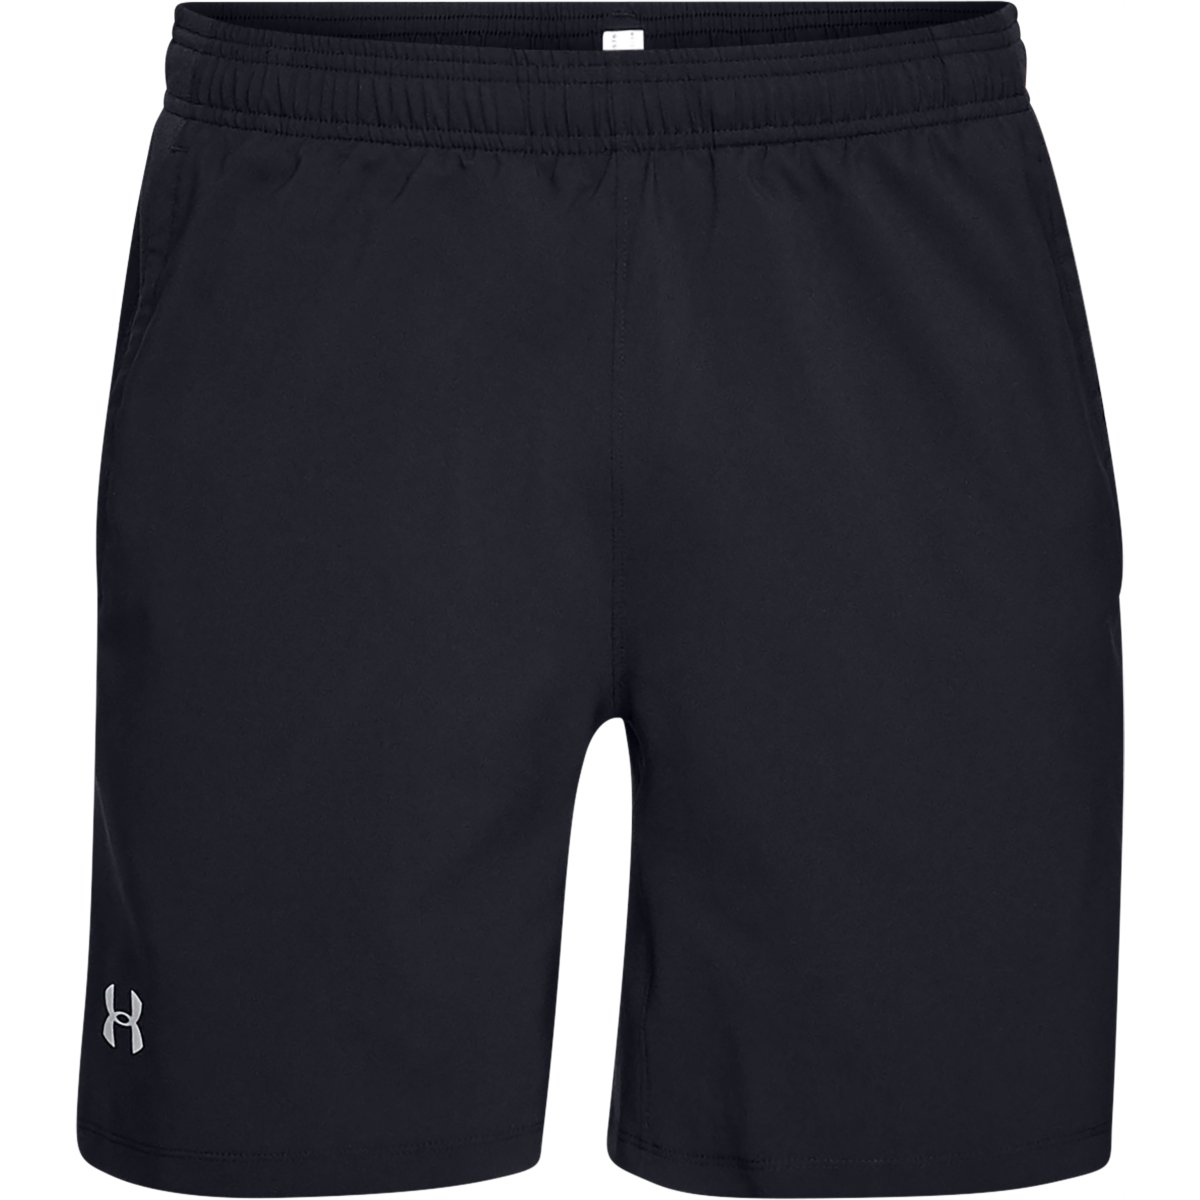 Under Armour Launch 2-in-1 Run Short | Amour